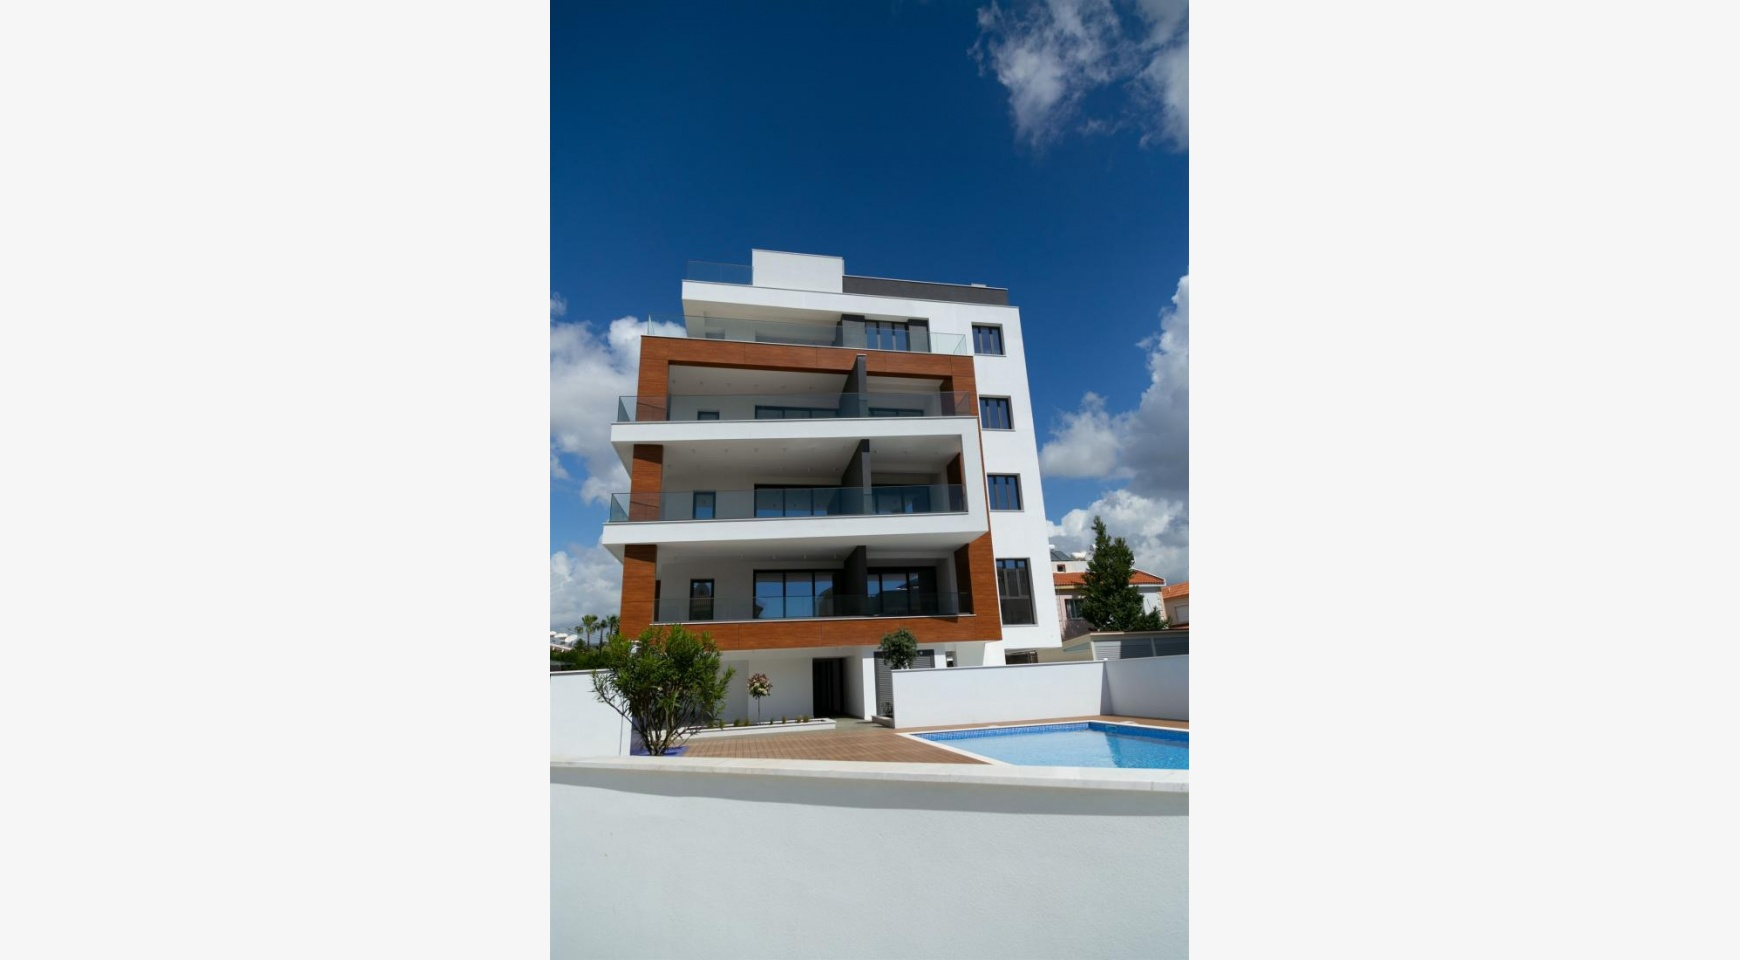 Malibu Residence. Modern 3 Bedroom Apartment 103 in Potamos Germasogeias Area - 5